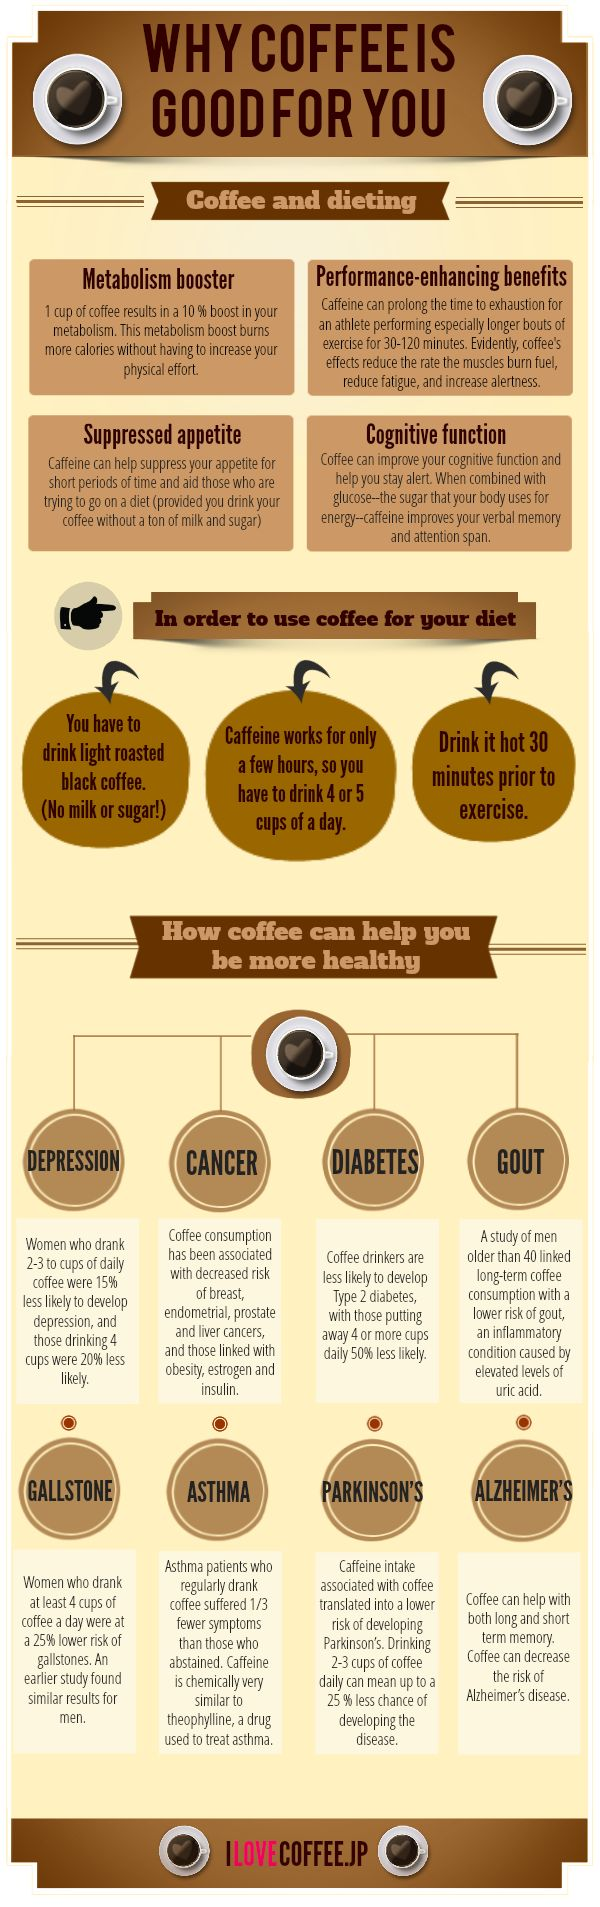 Why coffee is good for you (nice infographic, but note that it only addresses benefits and not possible negatives)